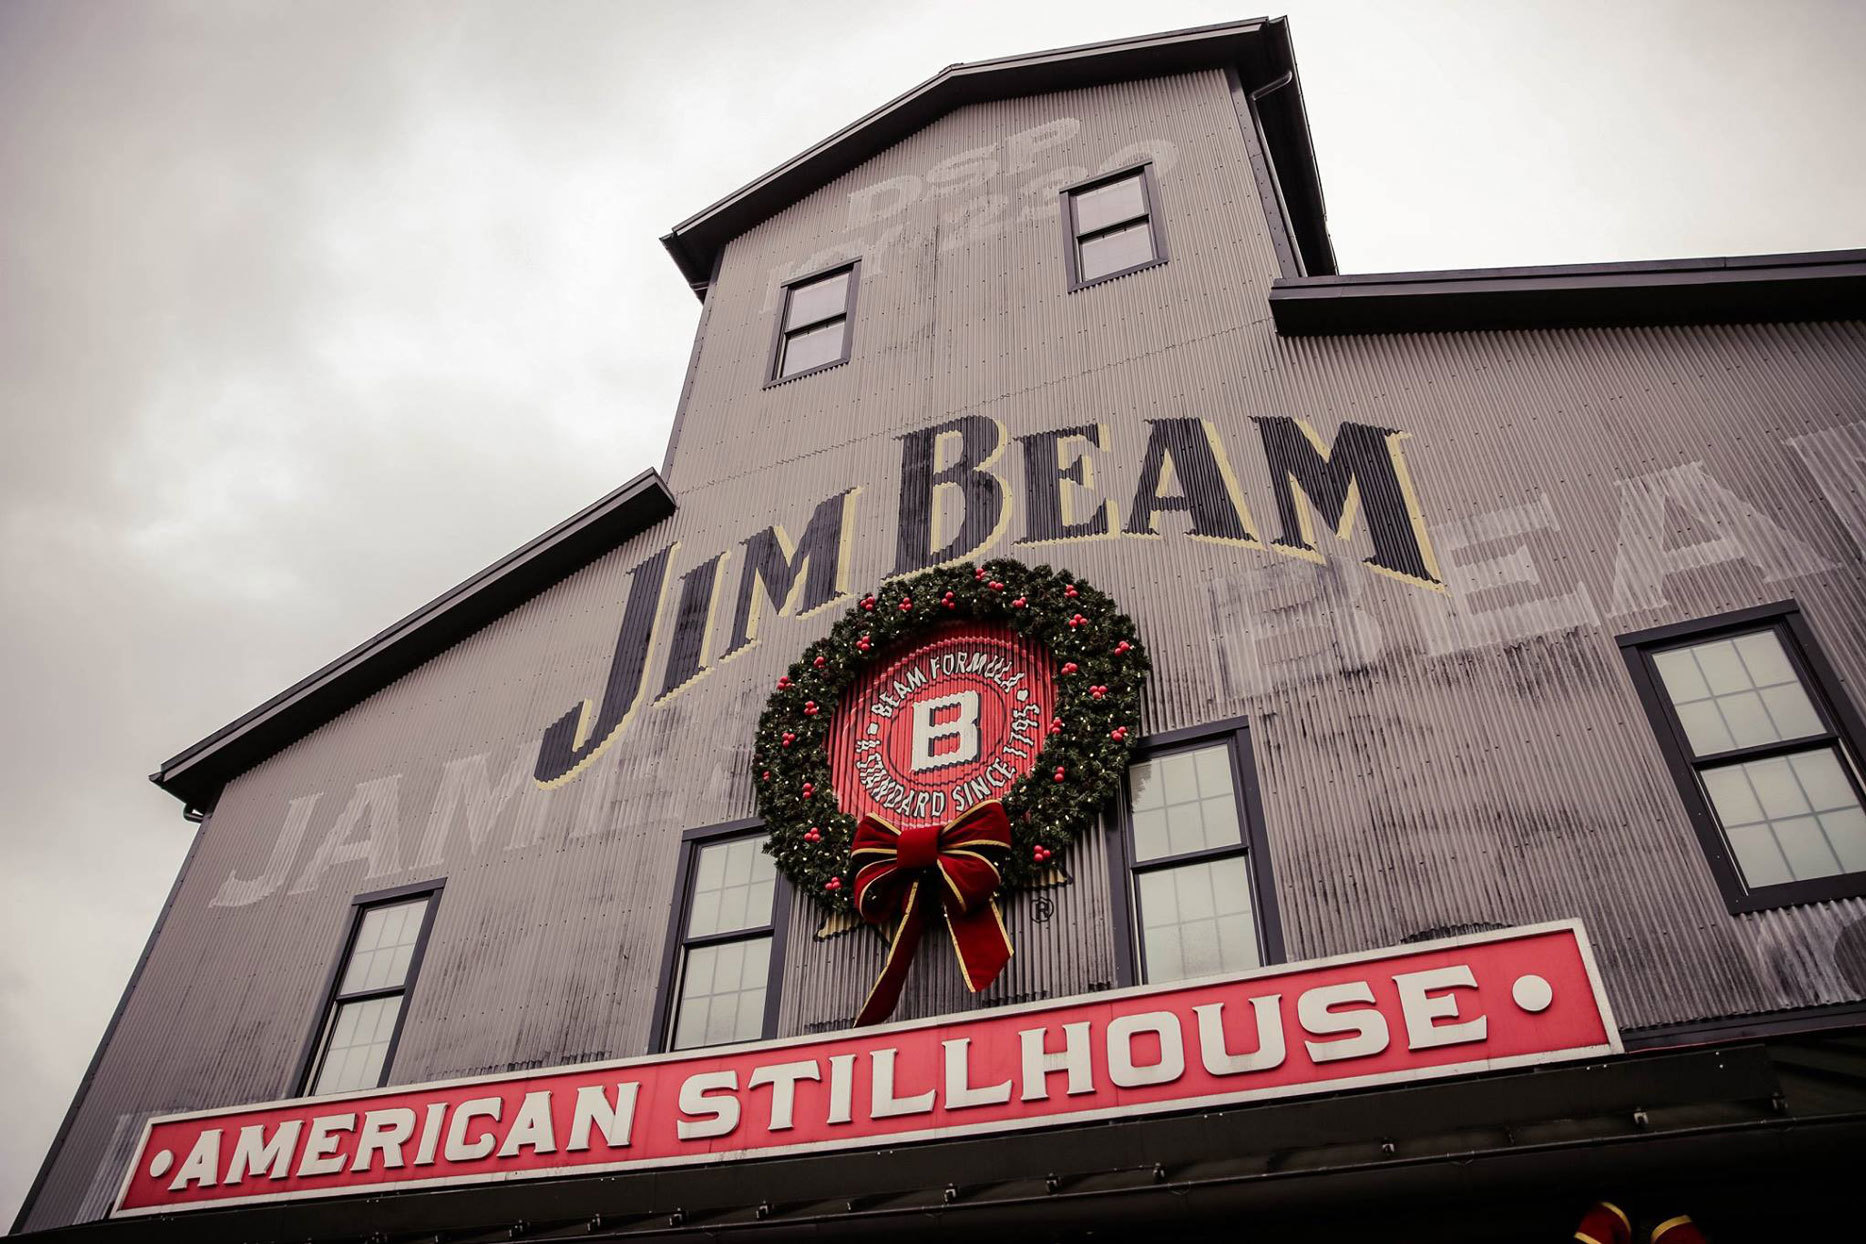 Jim Beam American Stillhouse building